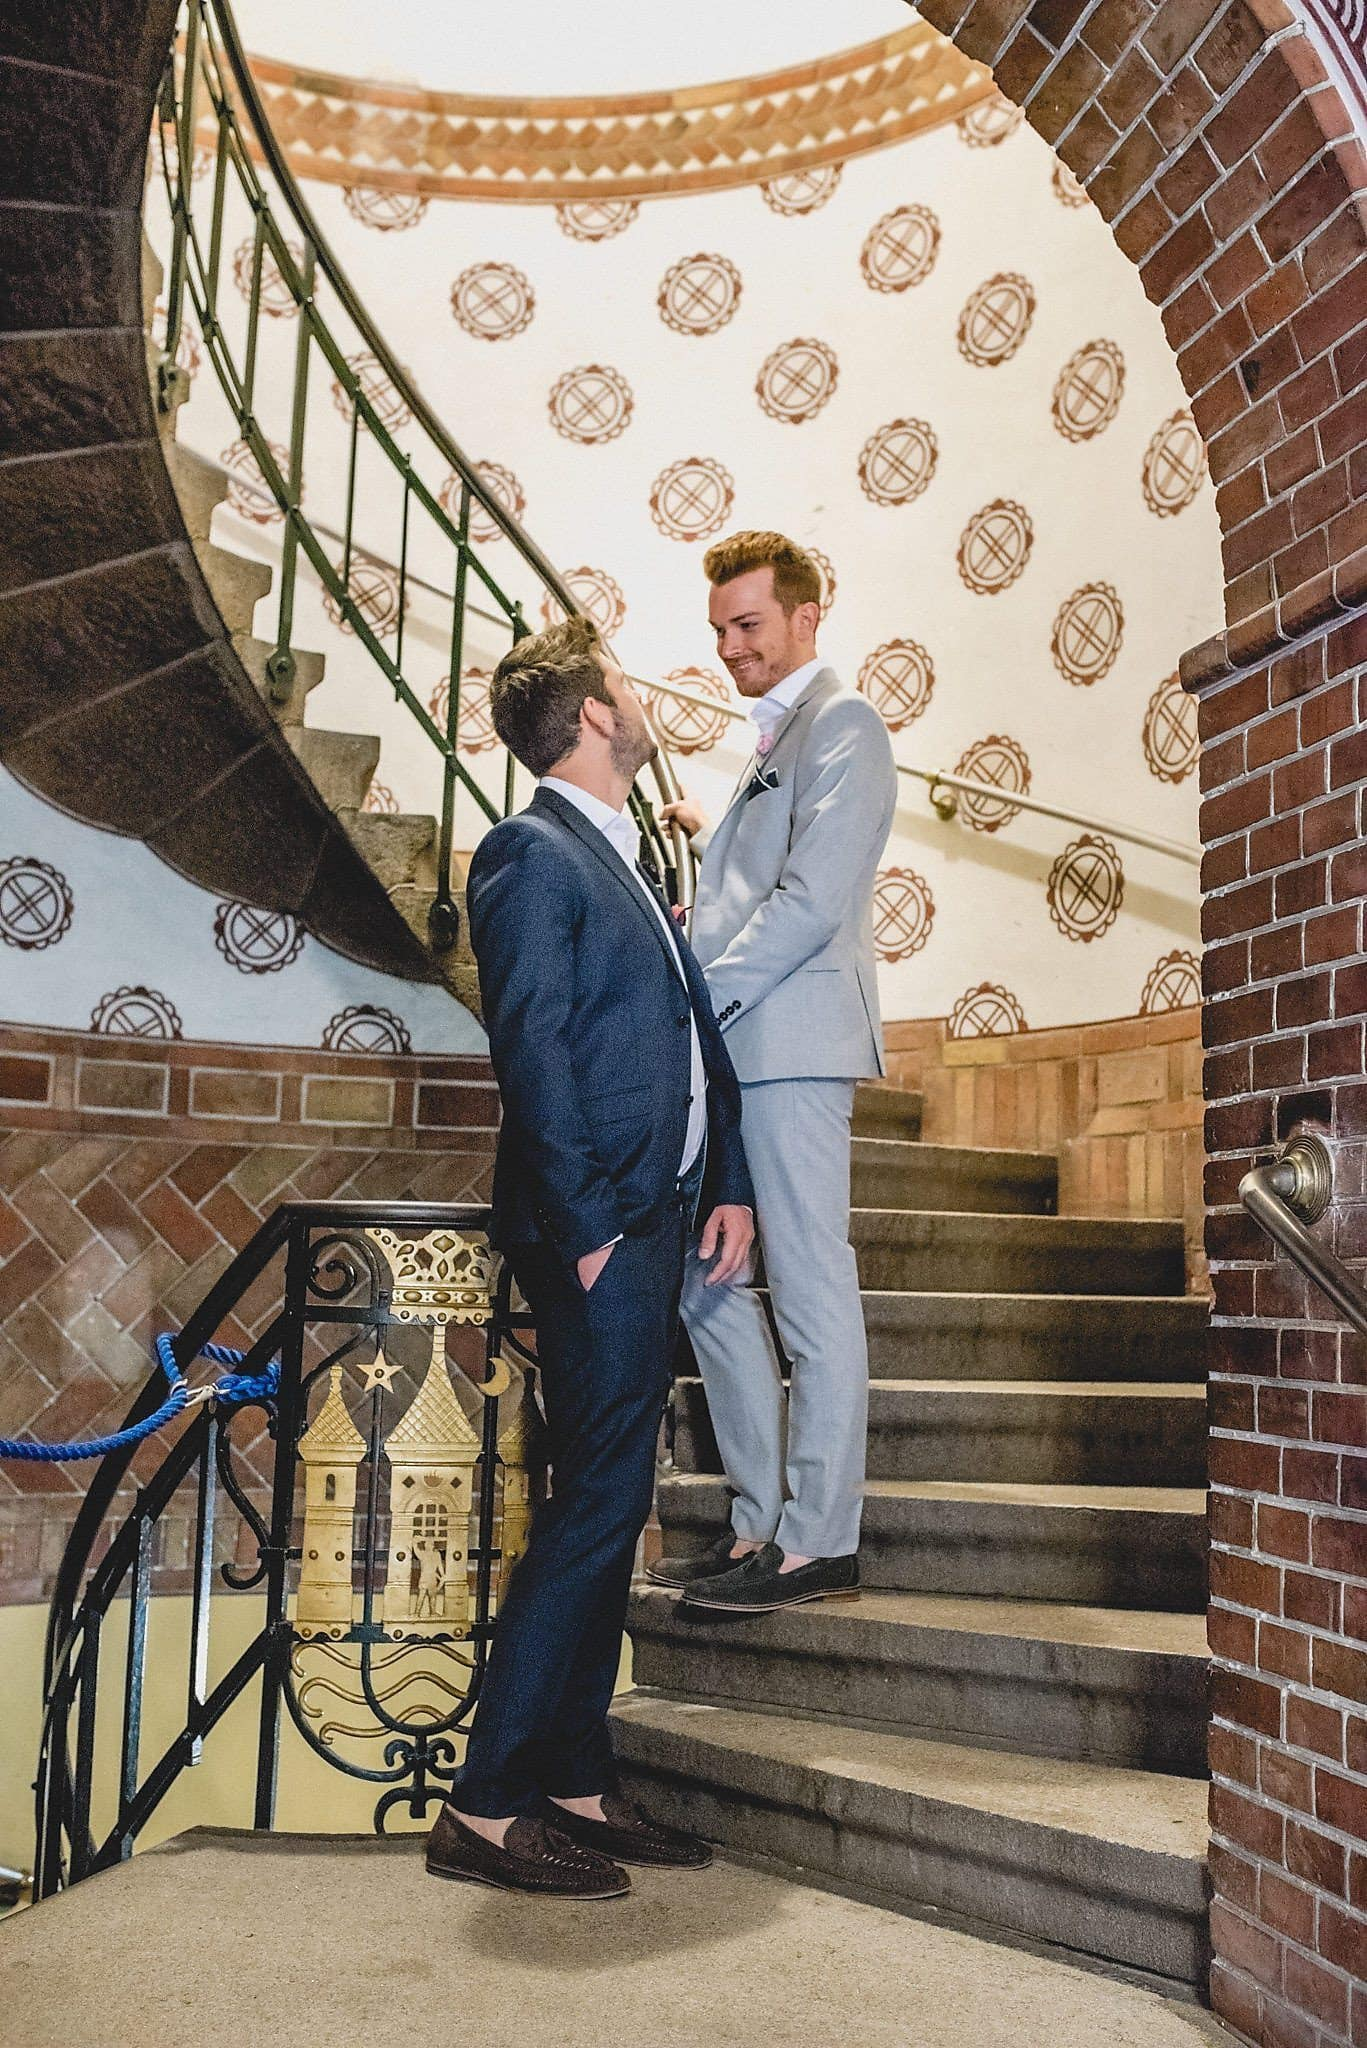 Tom looks up at his fiance Drew as he stands on the spiral staircase of the Copenhagen Radhus before their wedding ceremony